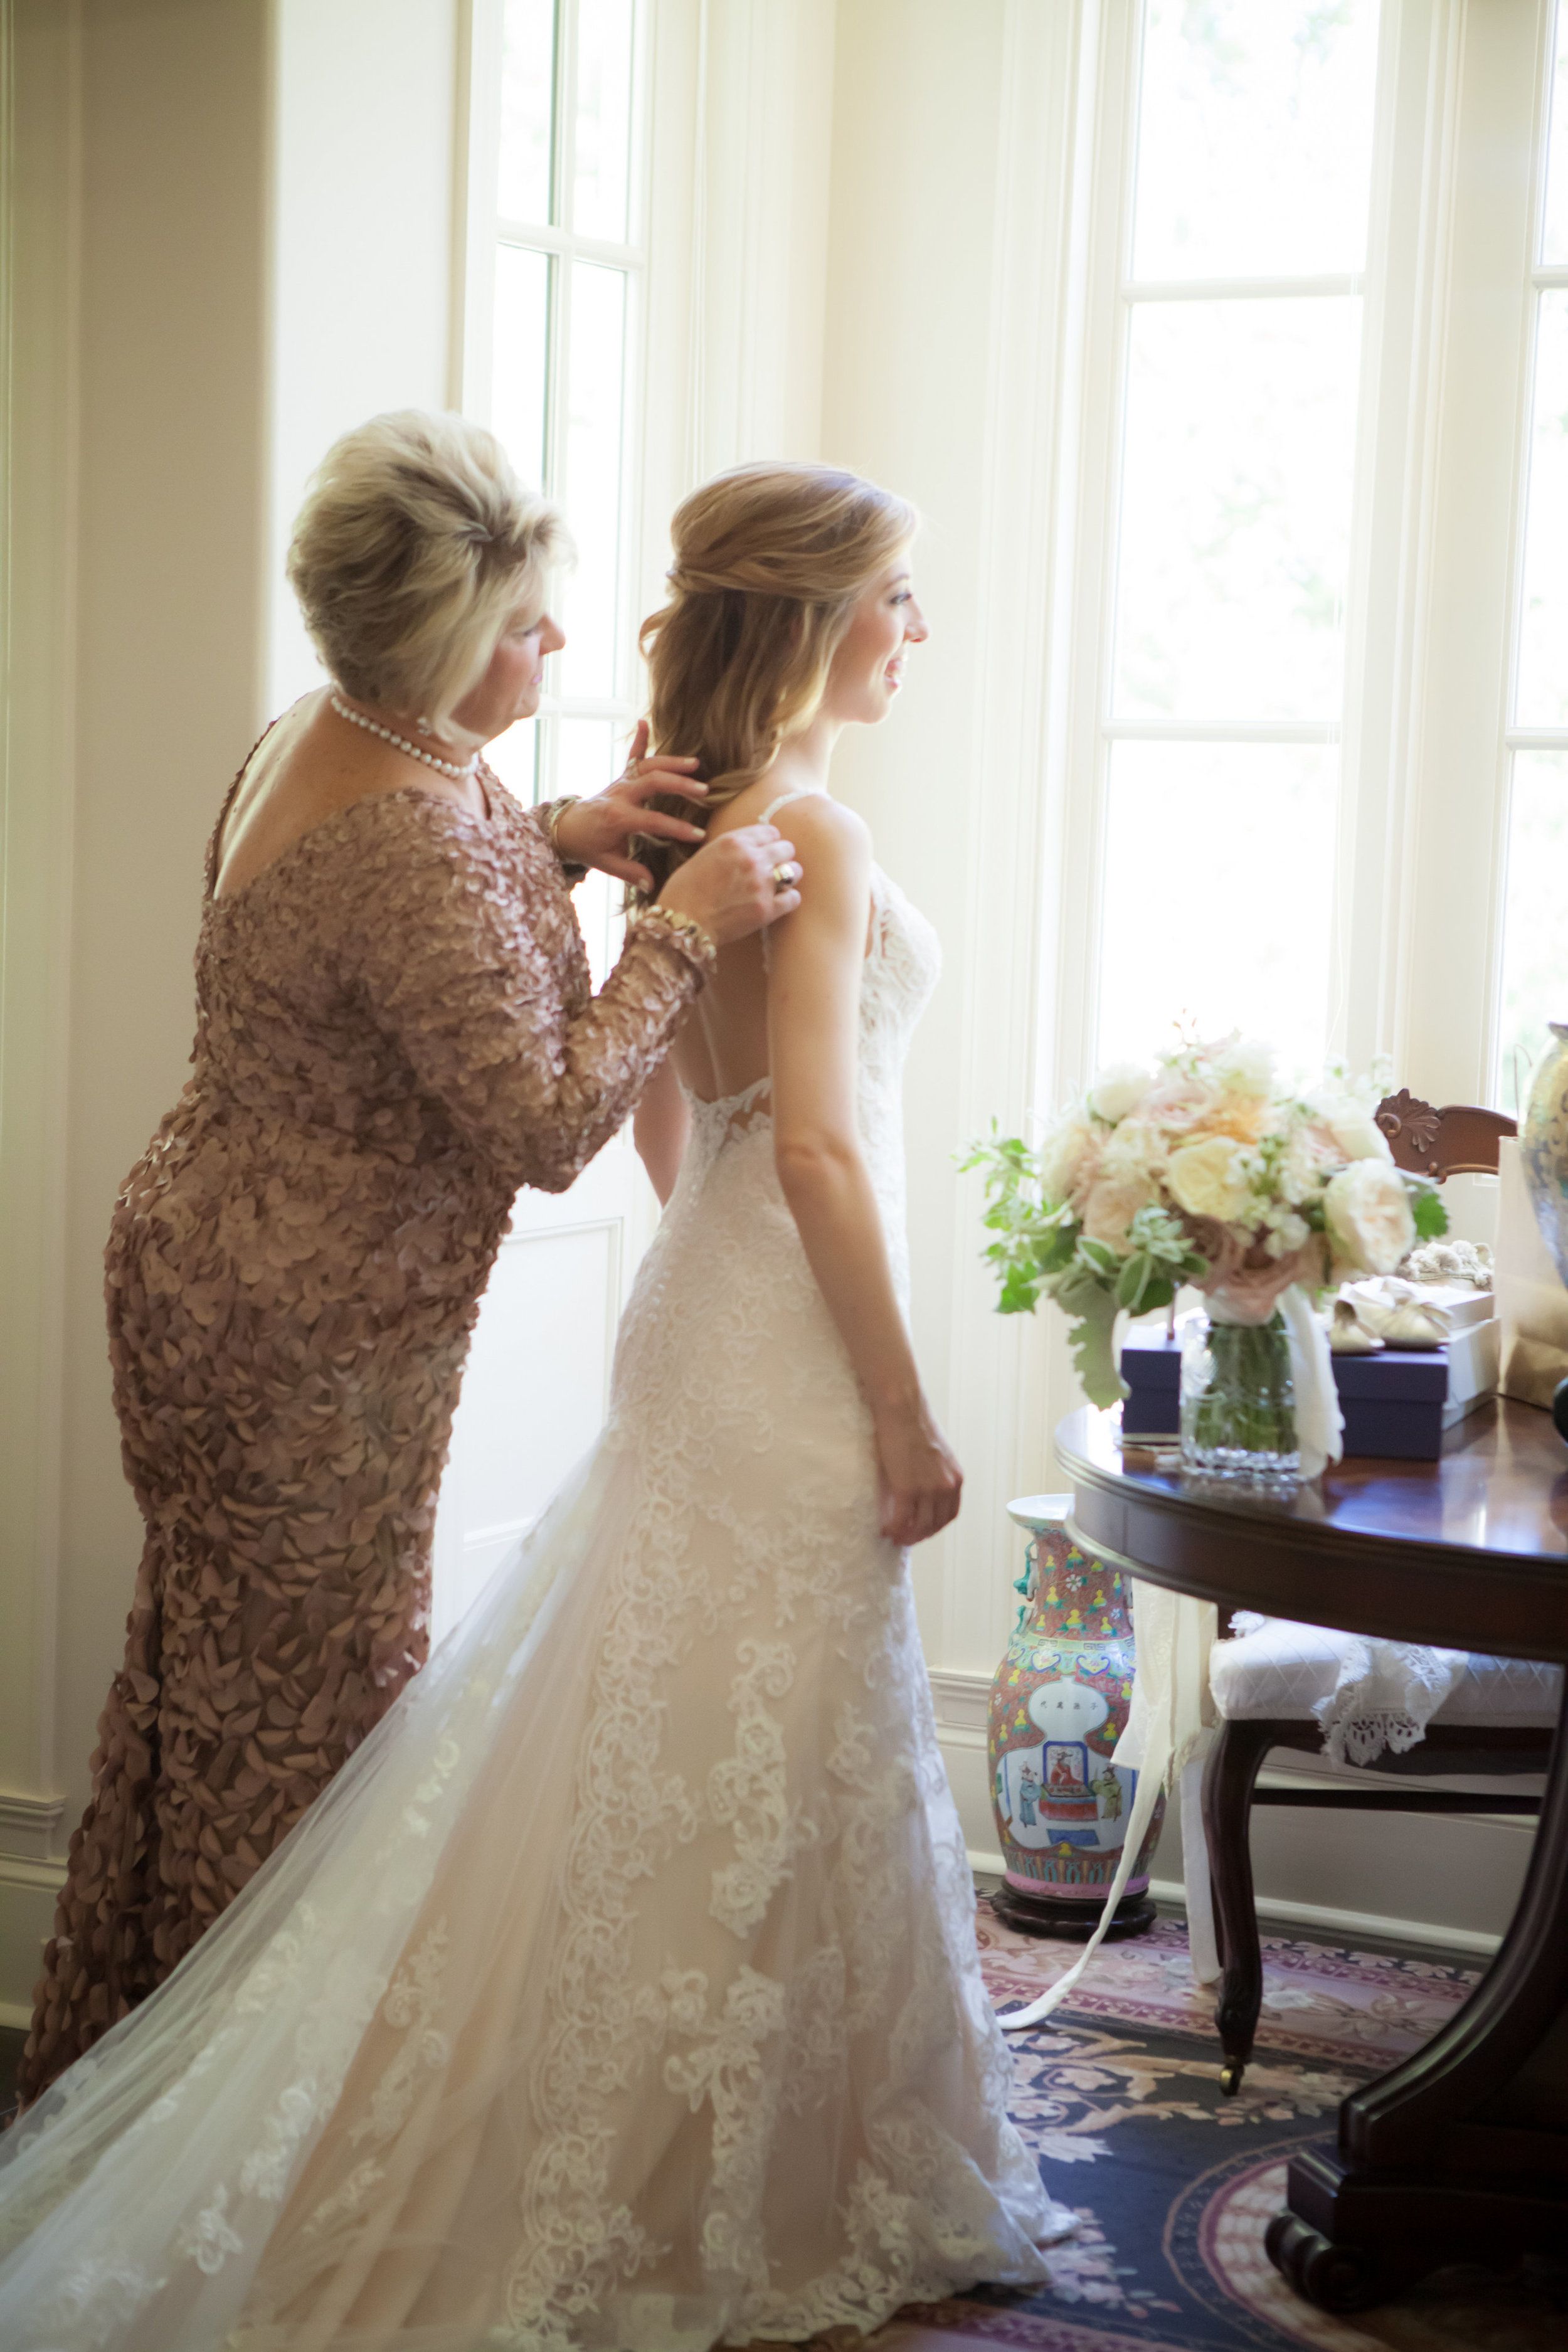 View More: http://allisonlewisphotography.pass.us/ae-and-austin-wedding